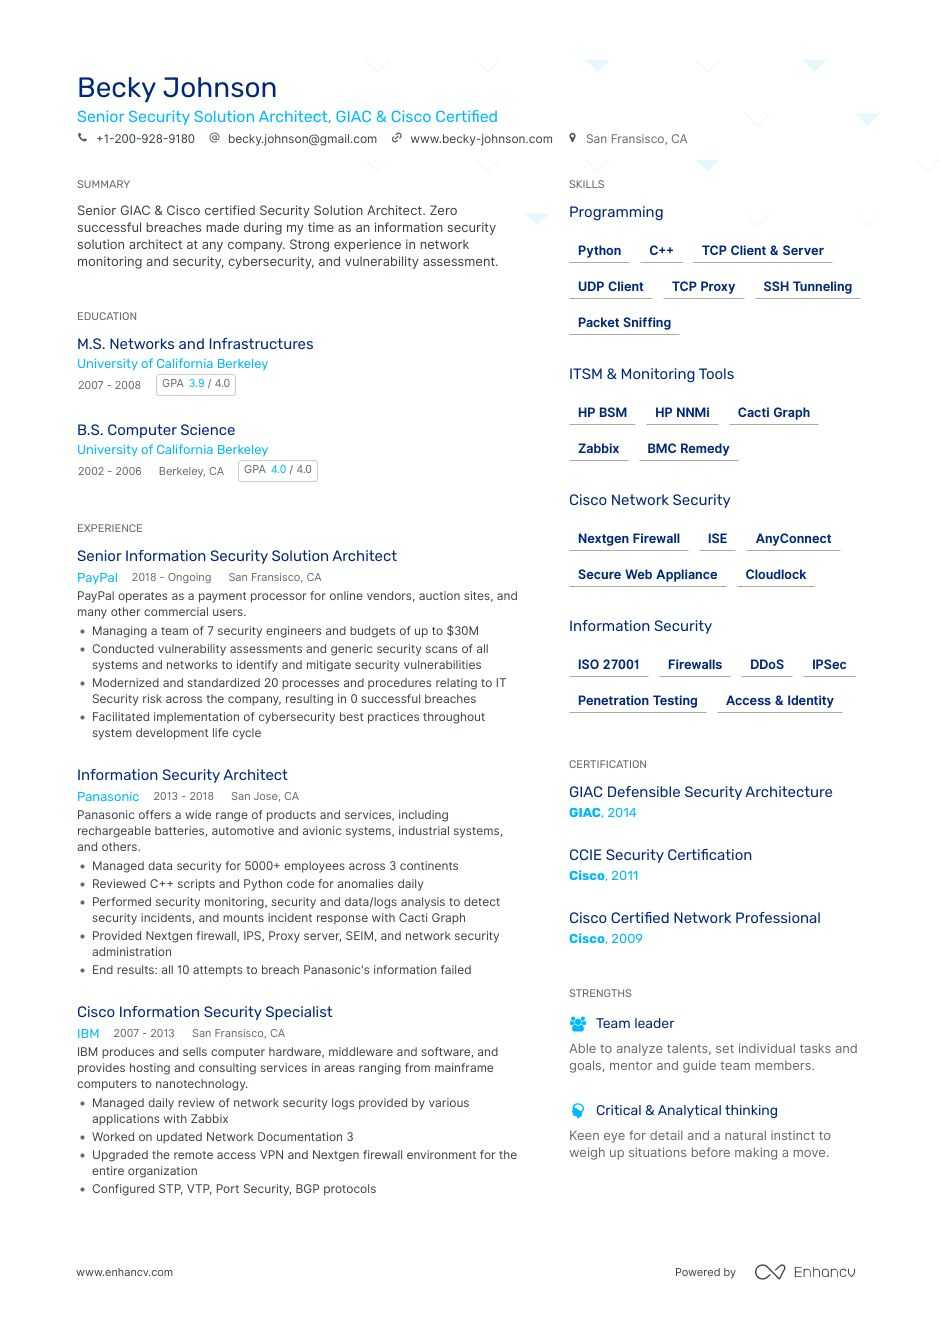 solutions architect resume samples templates guide for ccie security sample senior Resume Ccie Security Resume Sample